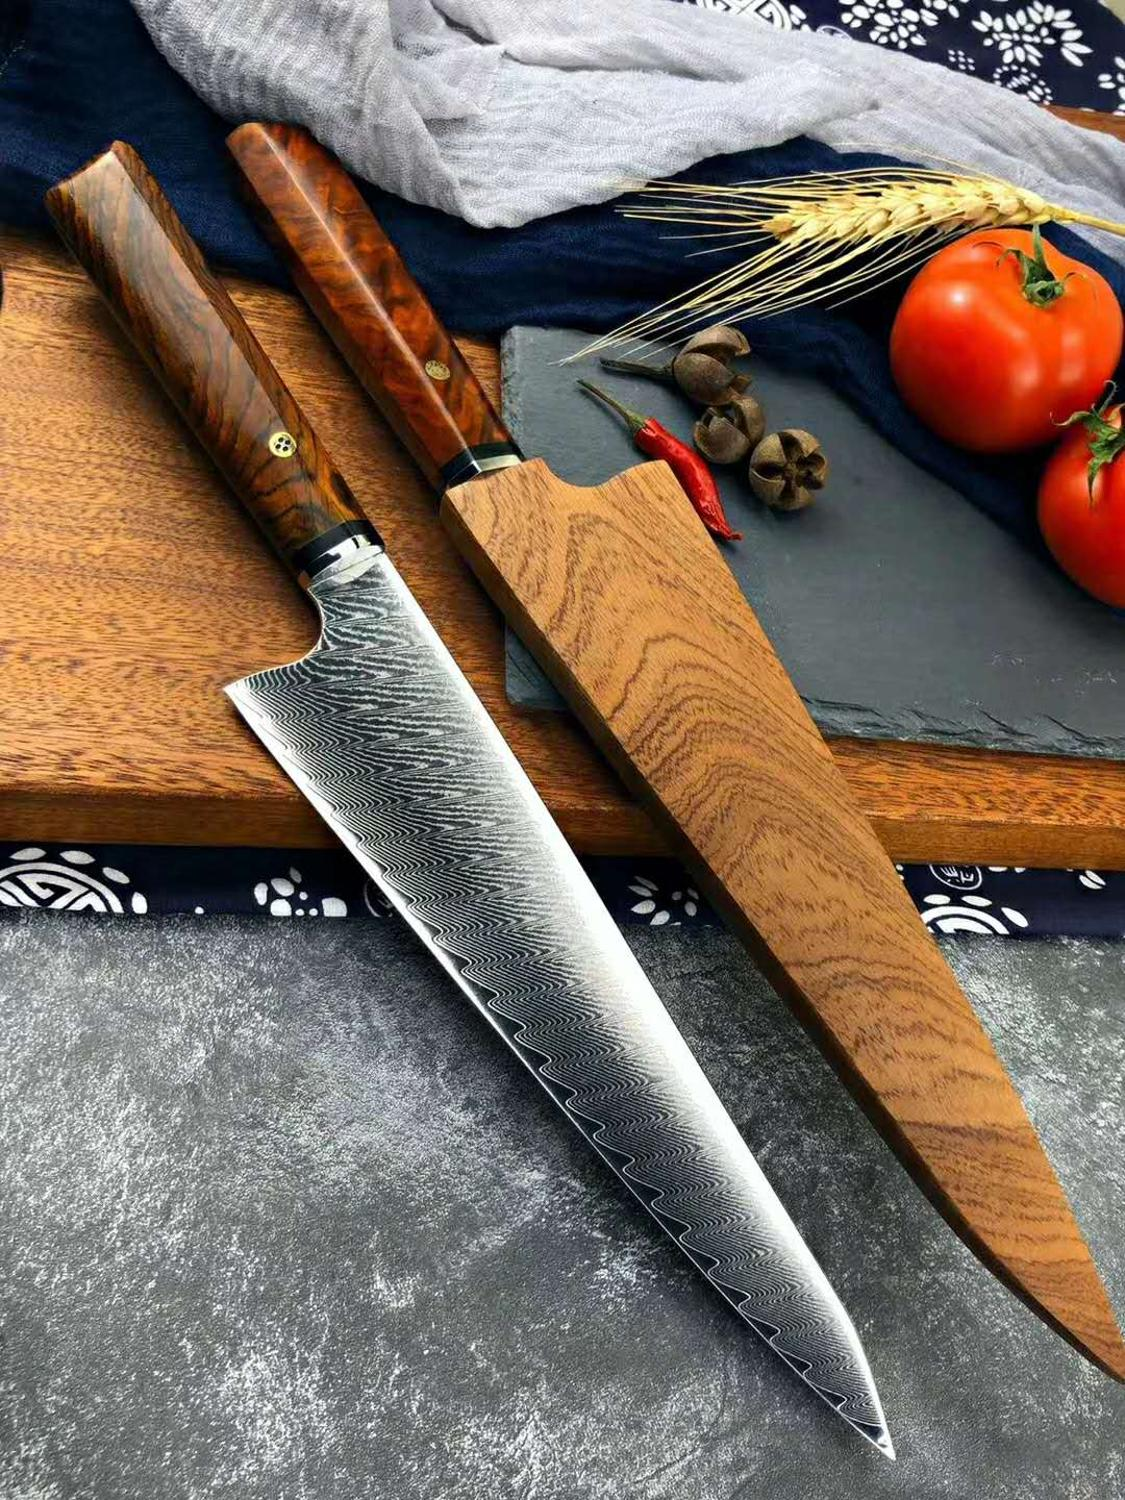 damascus chef knife vg10 damascus steel kichen knife tool japanese knife sharp cleaver knife Cooking knife set 2